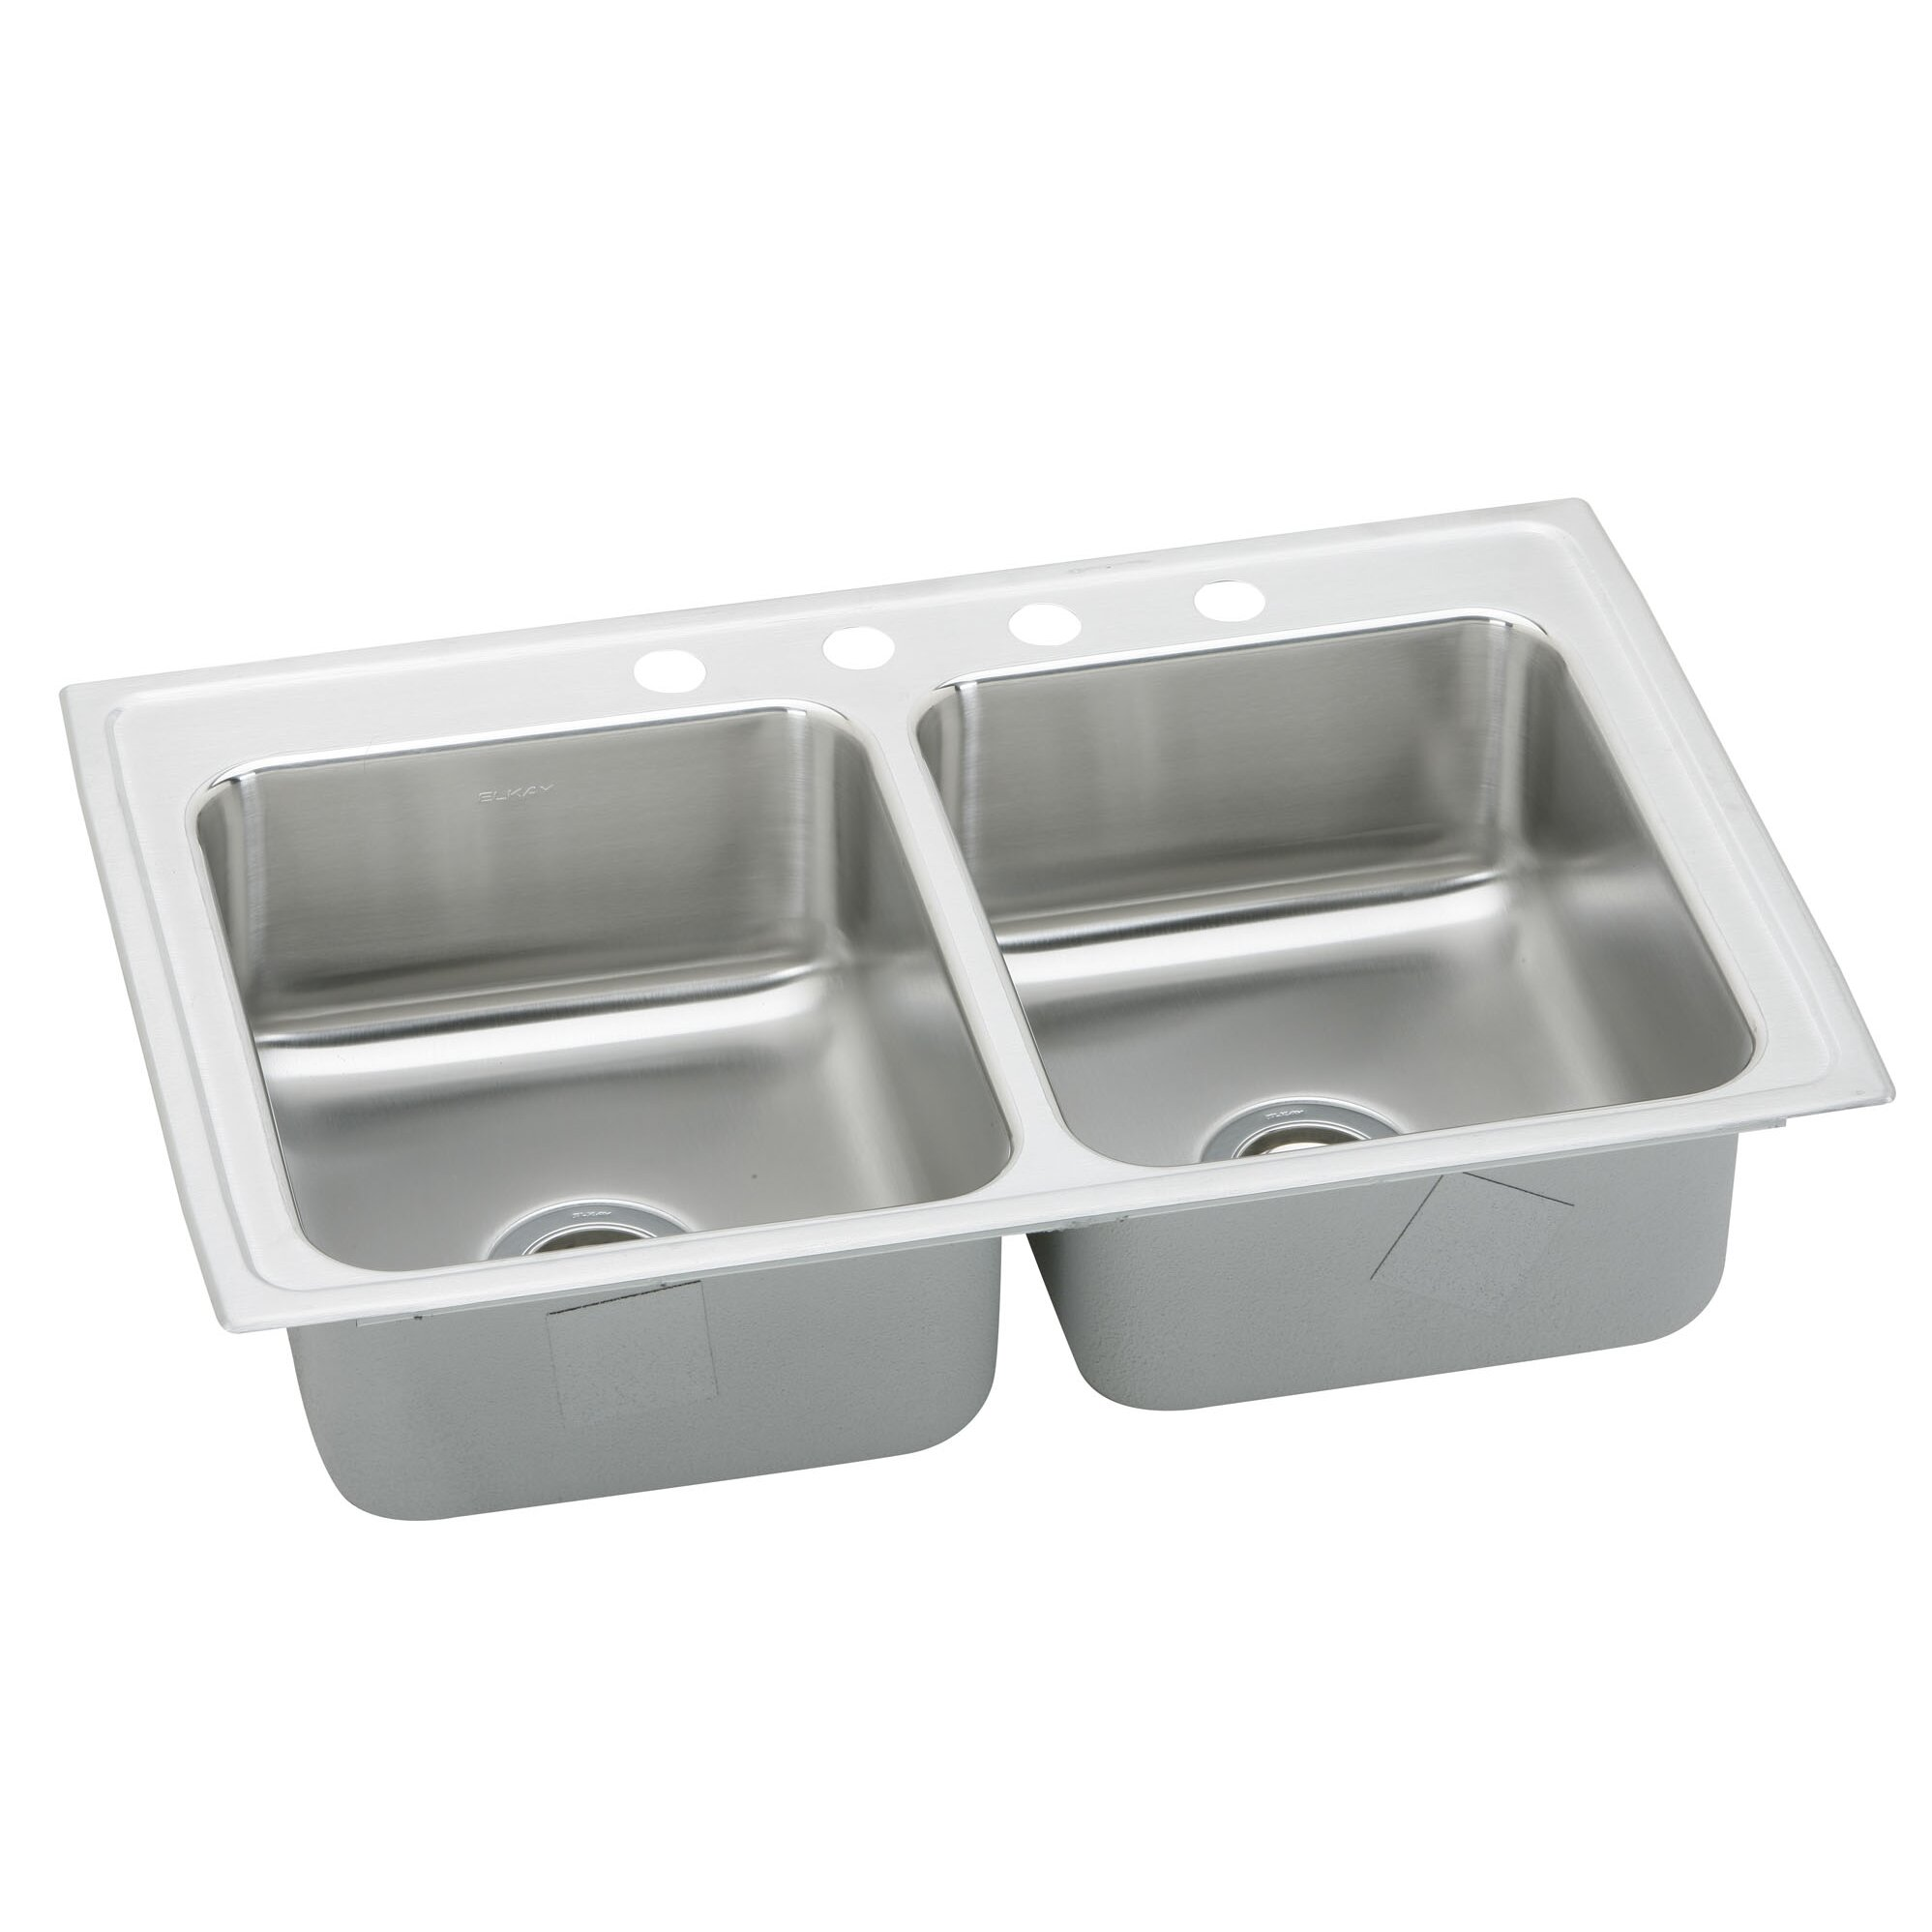 pacemaker 43 x 22 double bowl kitchen sink - Bowl Kitchen Sink